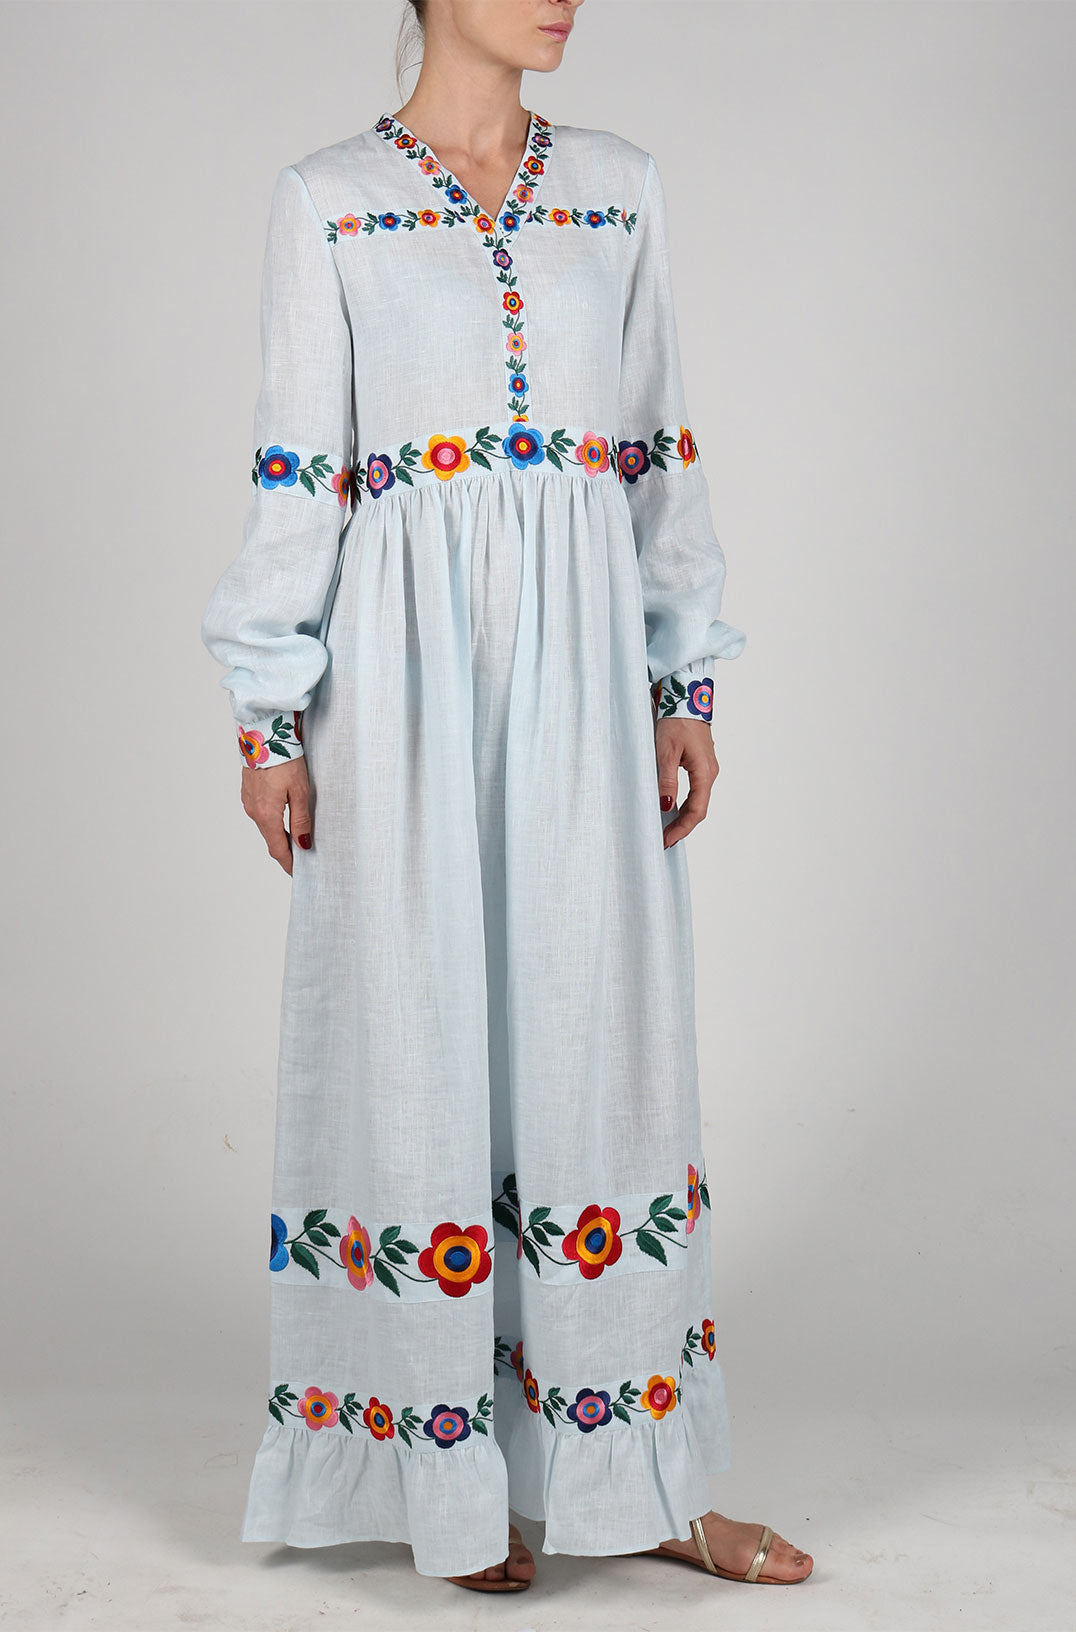 Fanm Mon BOHEME Vyshyvanka Maxi Dress Embroidered Light Blue Linen Multi Color Floral Embroidered Dress